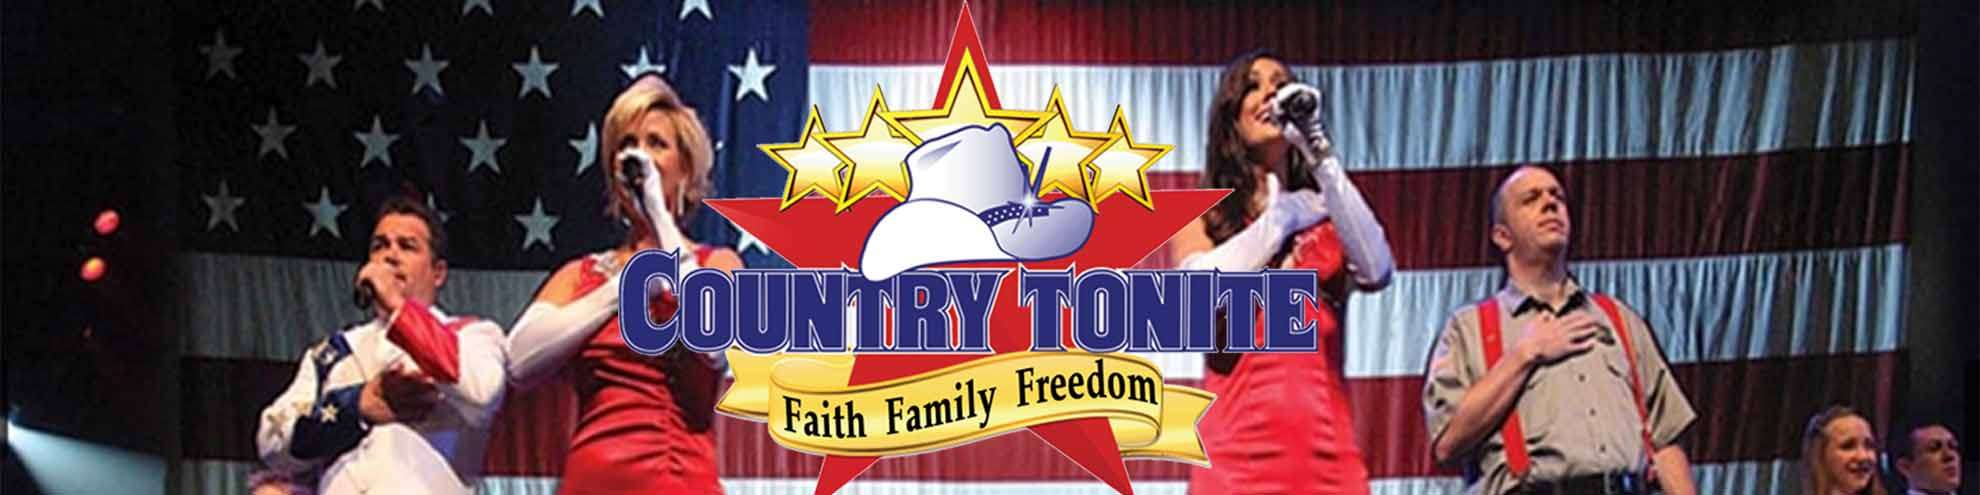 Country Tonite Discount Tickets